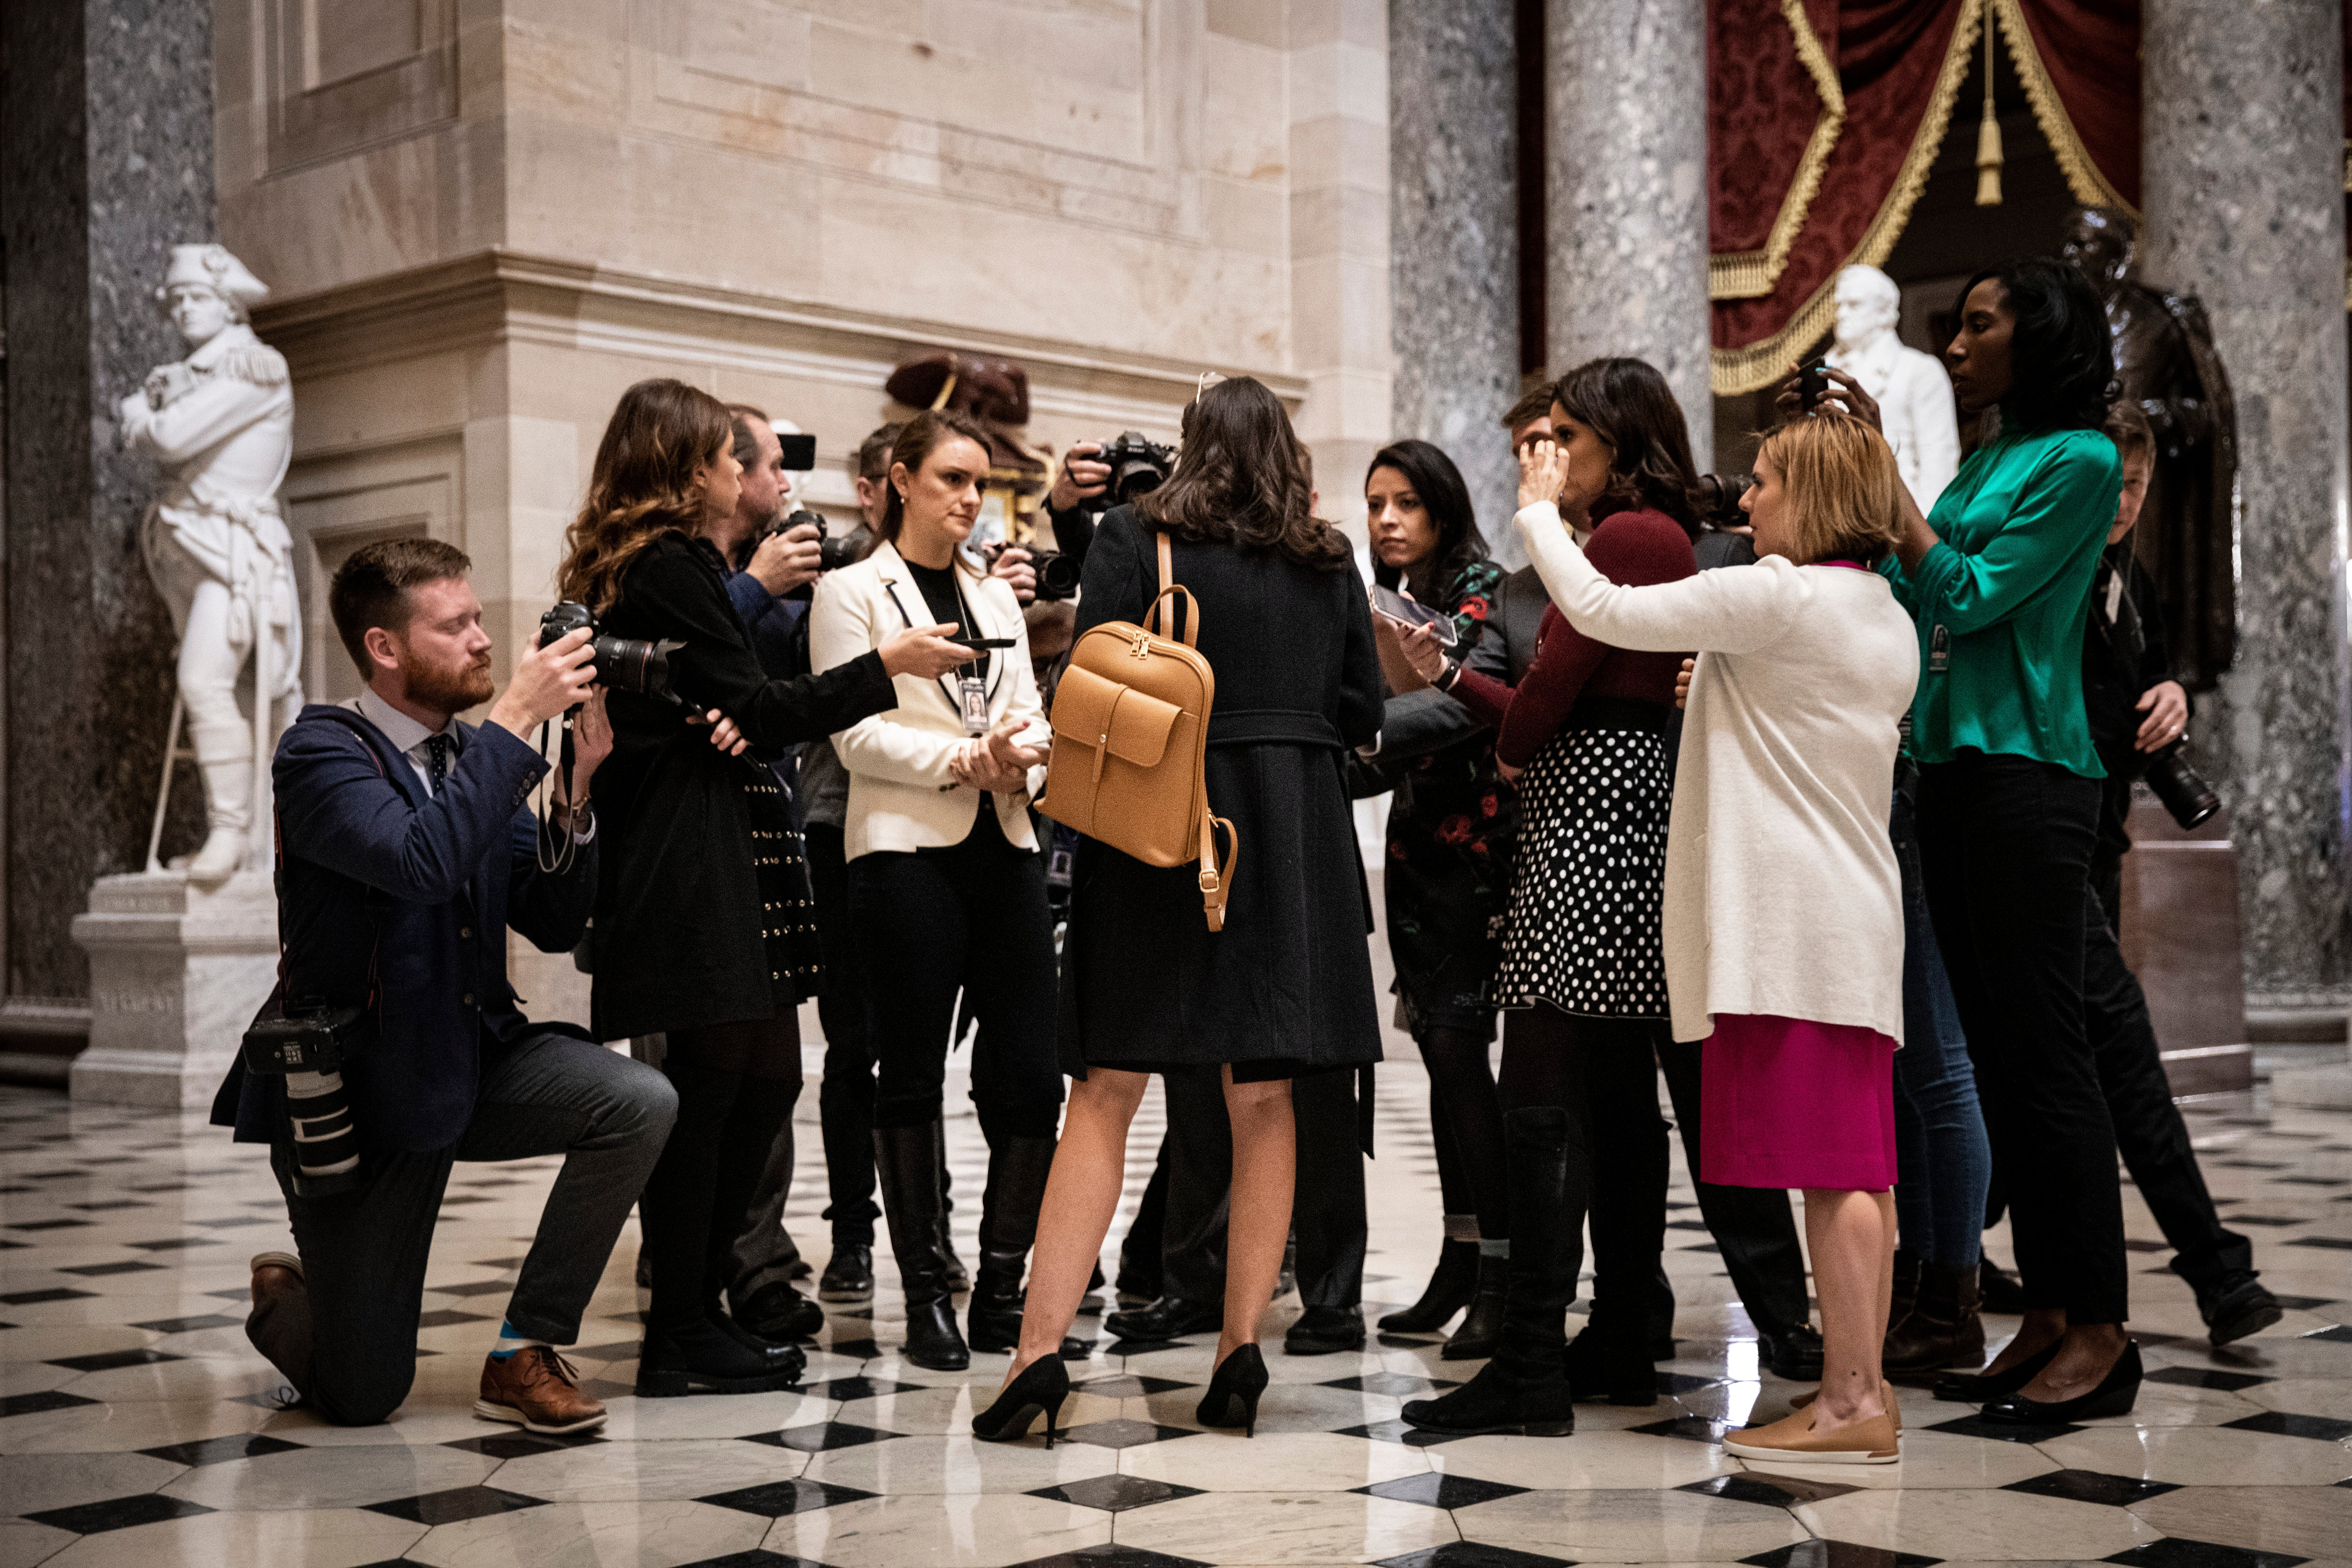 Rep. Alexandria Ocasio-Cortez (D-NY) speaks to reporters in Statuary Hall at the U.S. Capitol on December 18, 2019 in Washington, DC. (Drew Angerer/Getty Images)